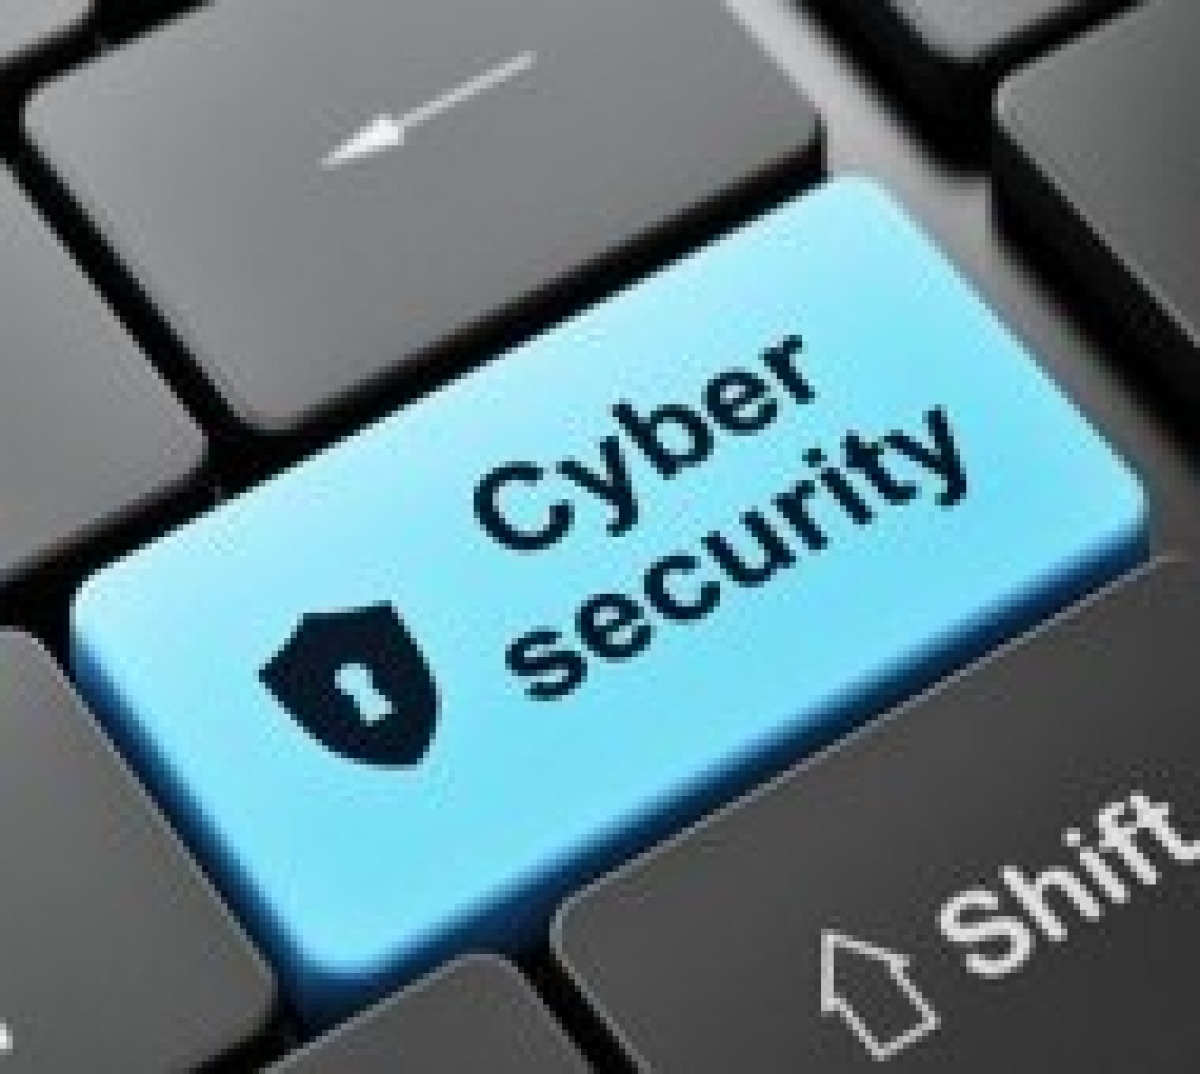 Cybercrime shot up significantly in 2015: Report